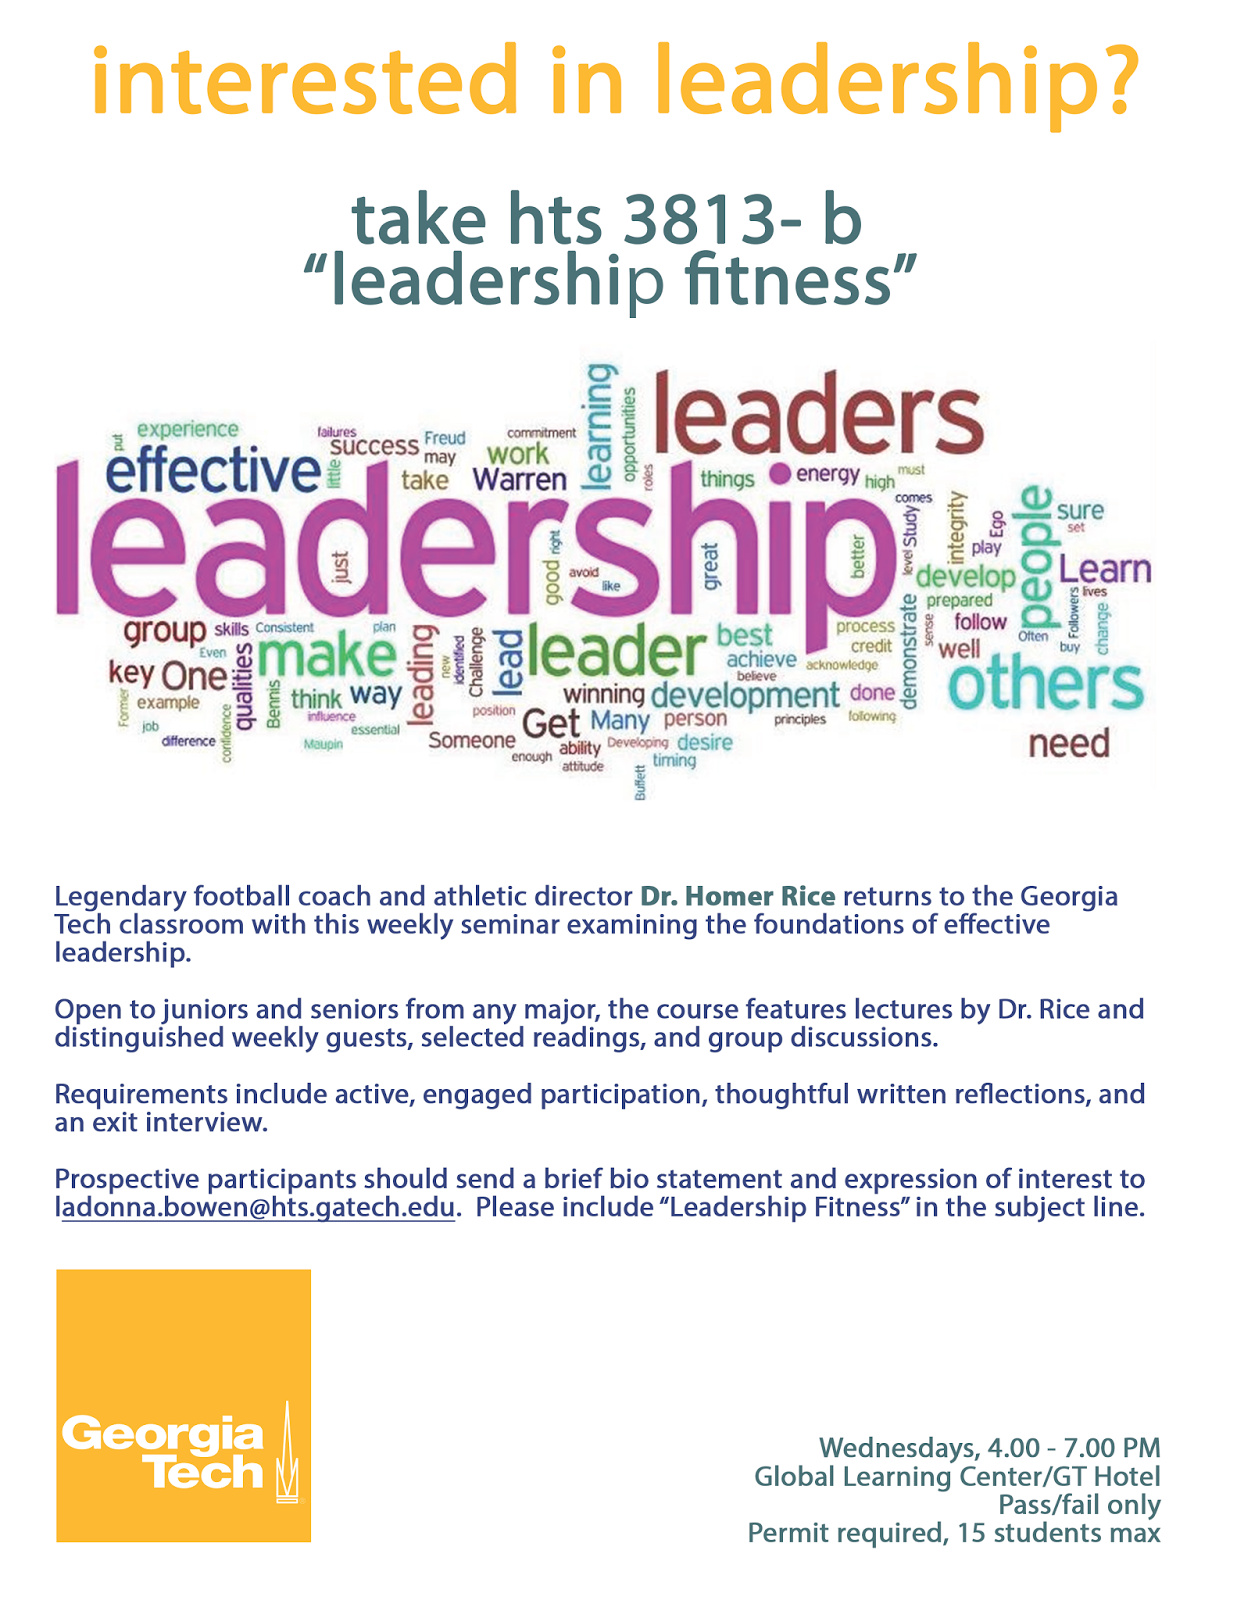 GT-HSOC Student Blog: Exciting Leadership Class with Dr. Homer Rice